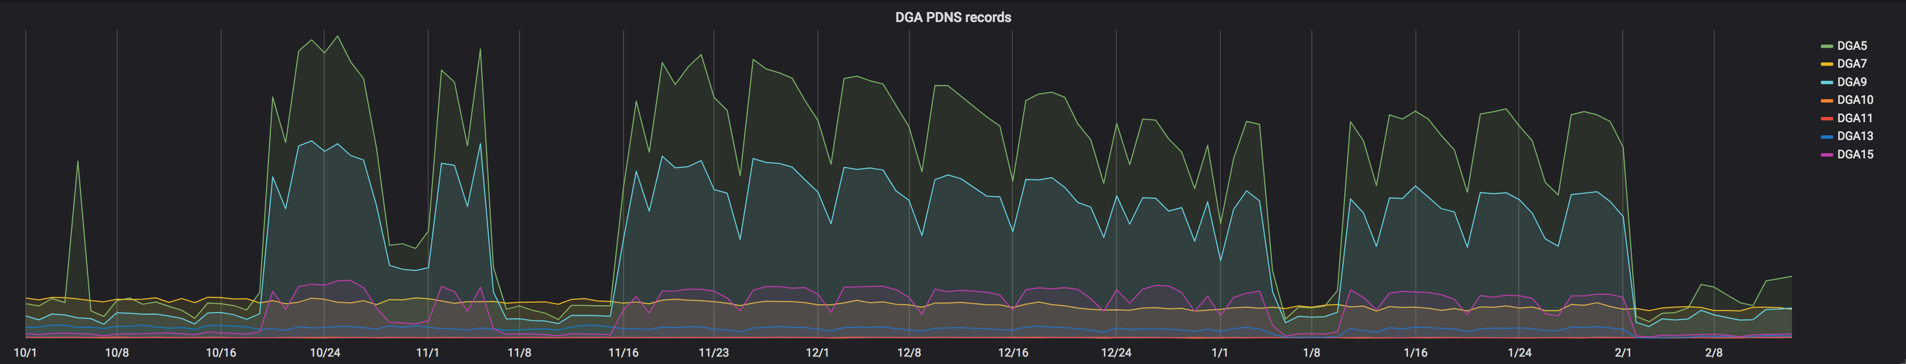 Picture7_DGA PDNS Records.png